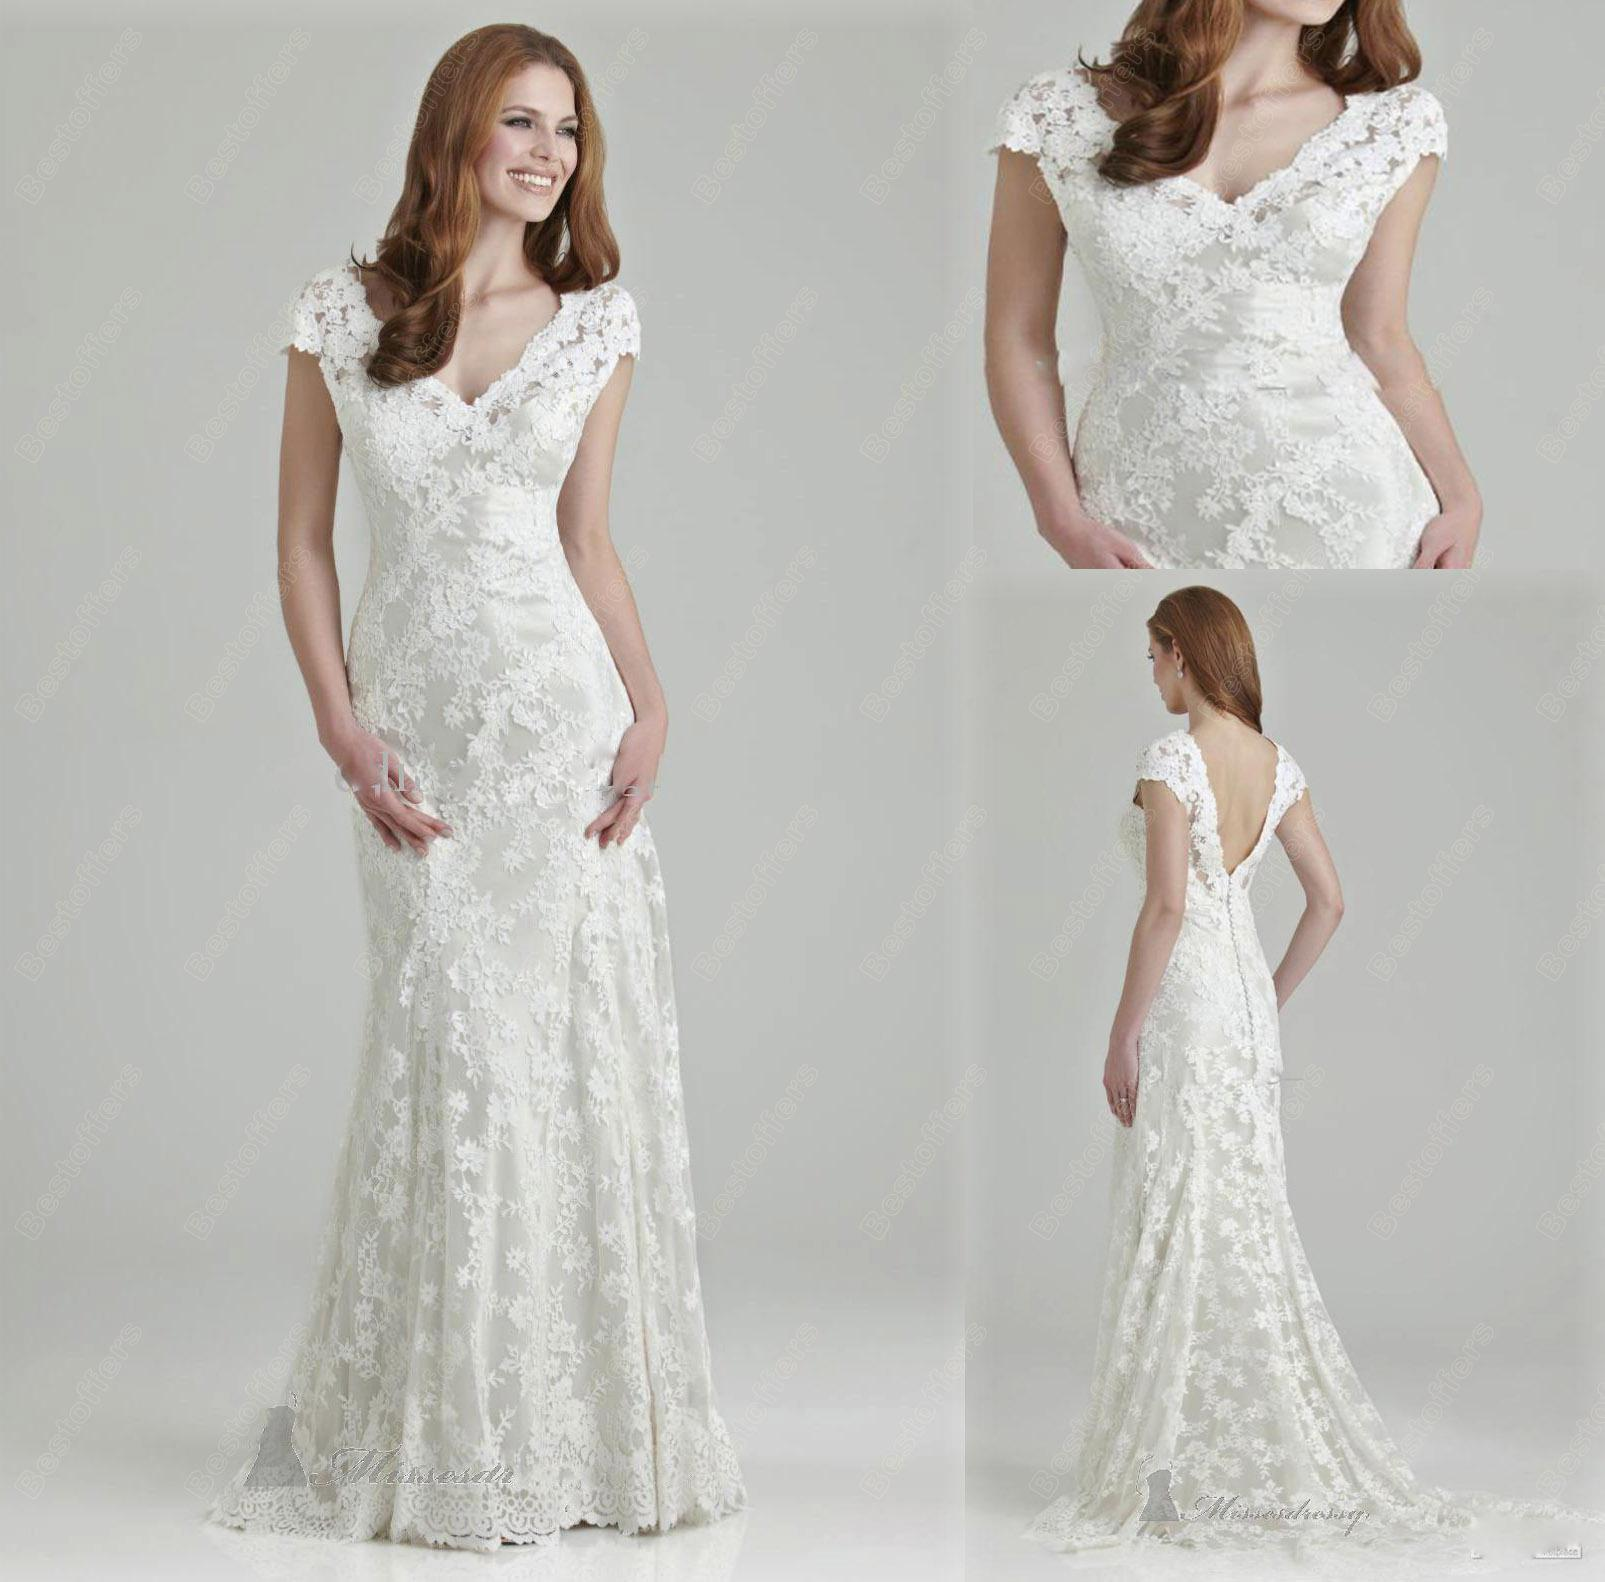 Collection Lace Aline Wedding Dress Pictures - Weddings Pro